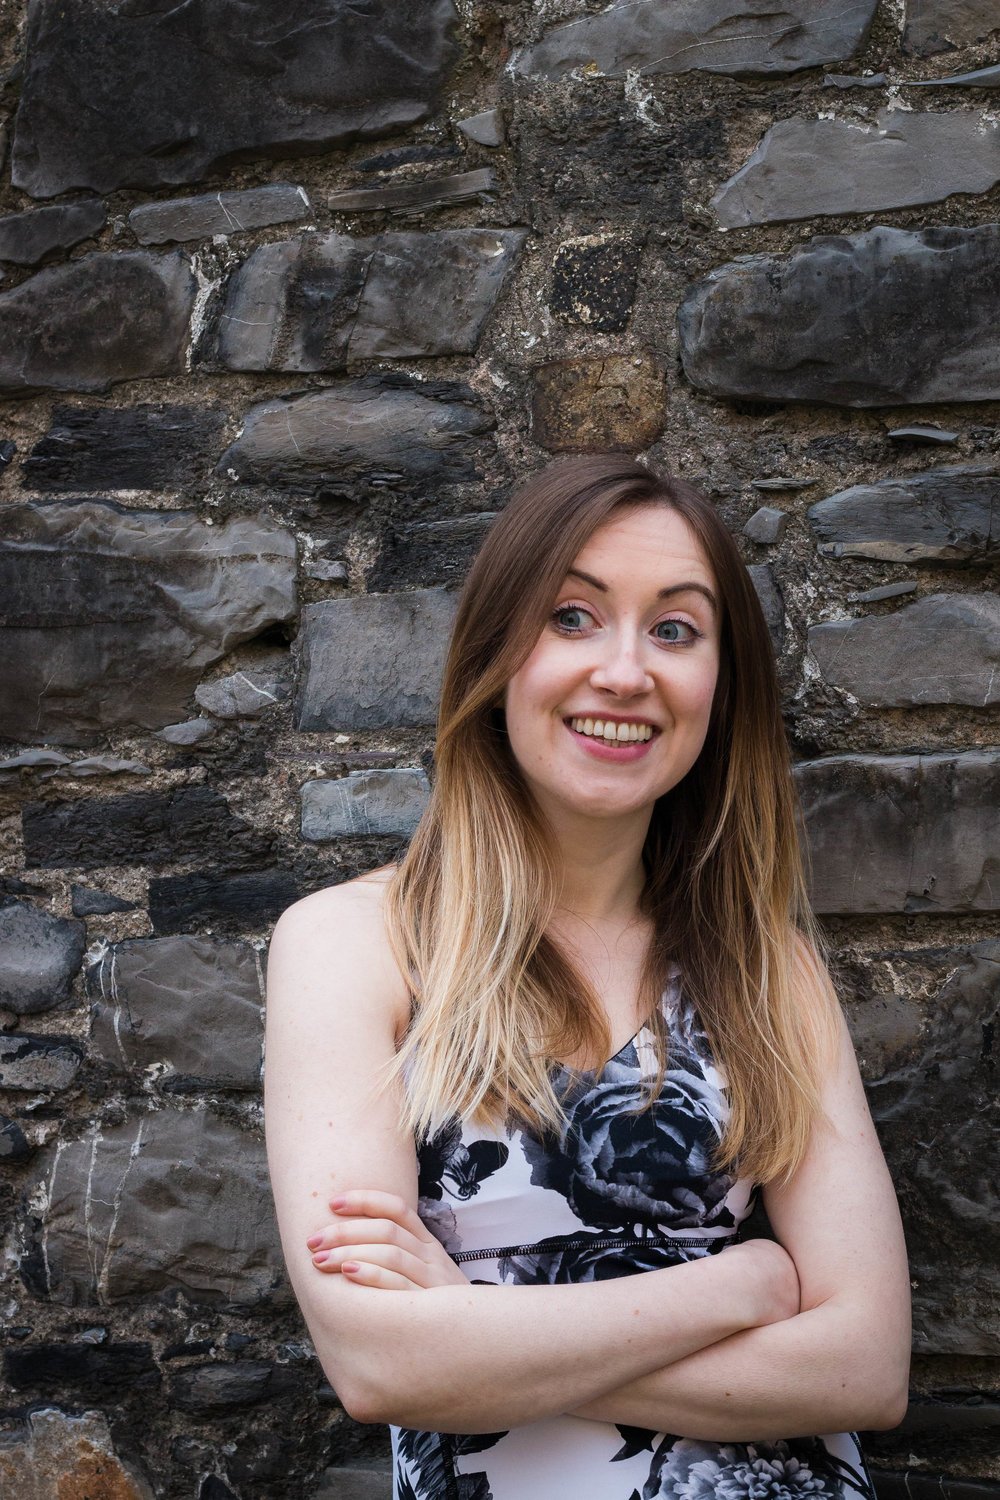 Eimear Beardmore   Educator, yoga teacher and mover. From the Dublin mountains Eimear draws on the practice of yoga to cultivate balance in every facet of life, yin and yang.  Trained in vinyasa, hatha and yin she teaches a flowing and expansive vinyasa practice grounded in organic movement. Her yin style is one of self-inquiry, fostering ease in body and mind.